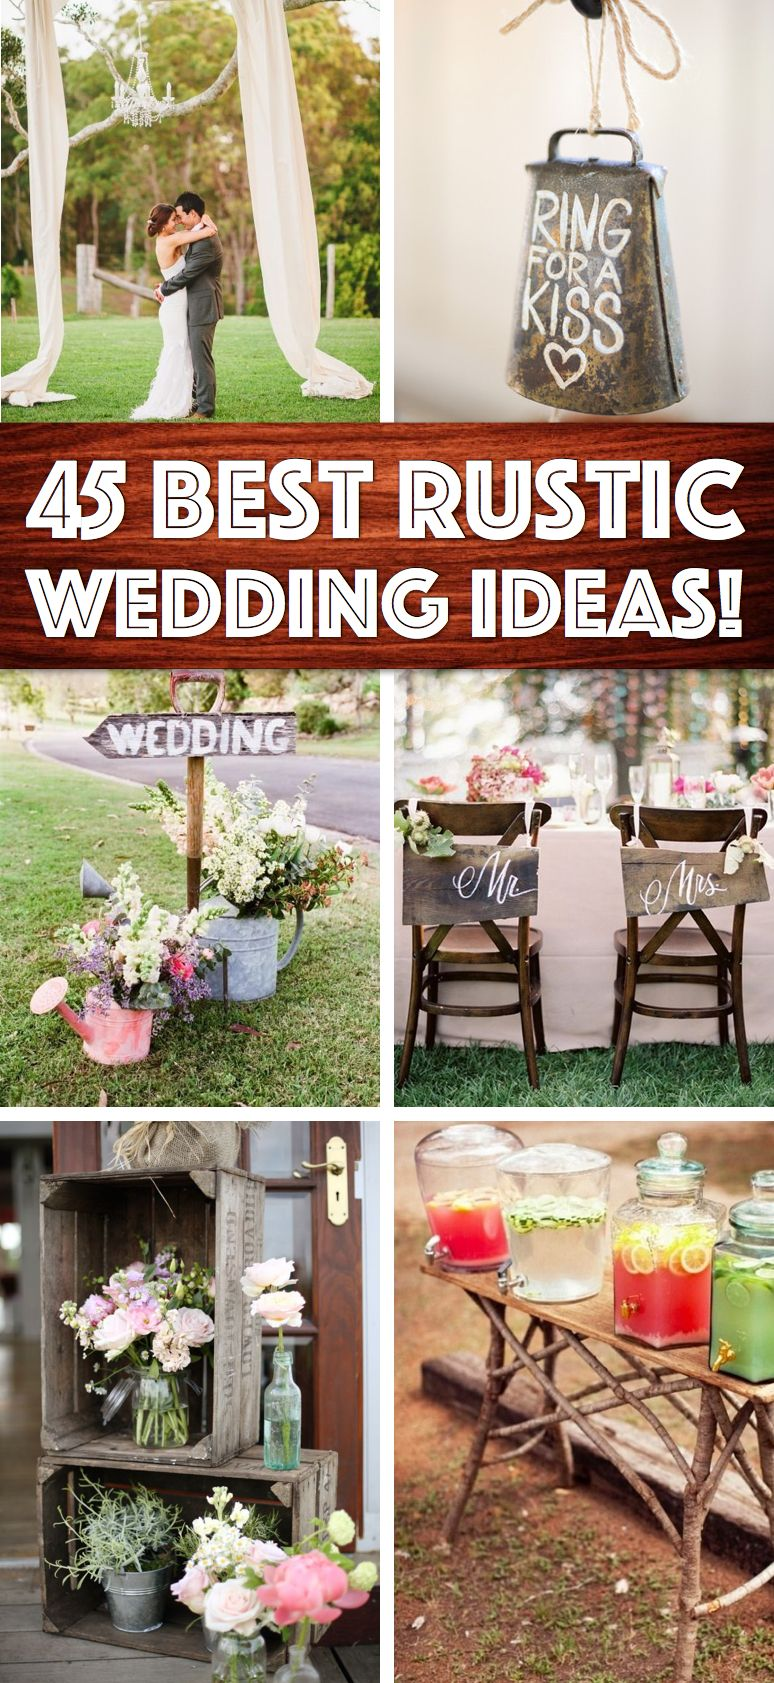 Shine On Your Wedding Day With These Breath Taking Rustic Wedding Decoration Ideas